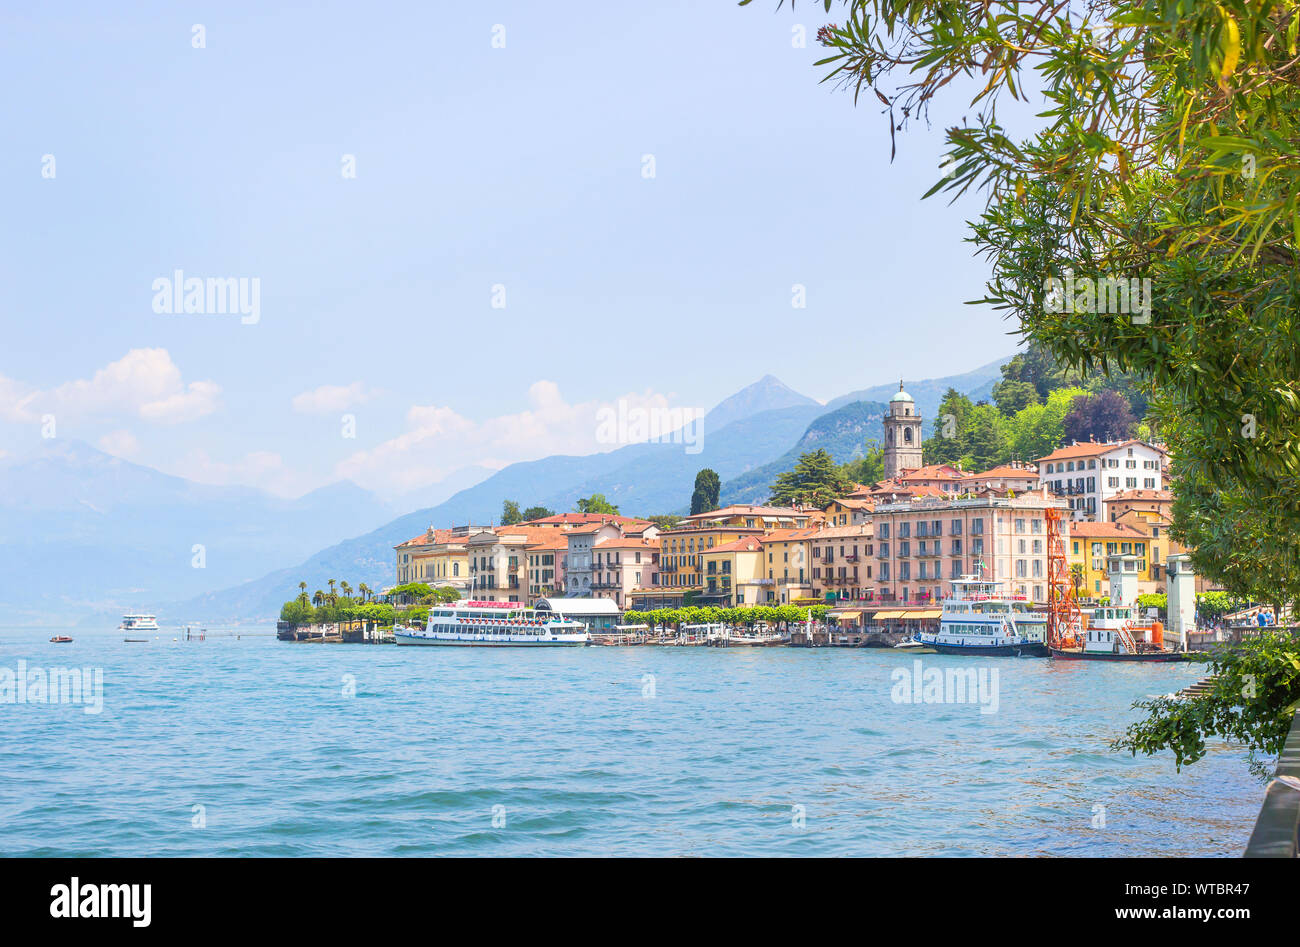 Landscape Of Como lake in Italy. Spectacular view on coastal town - Bellagio, Lombardy. Famous Italian recreation zone and popular European travel des Stock Photo